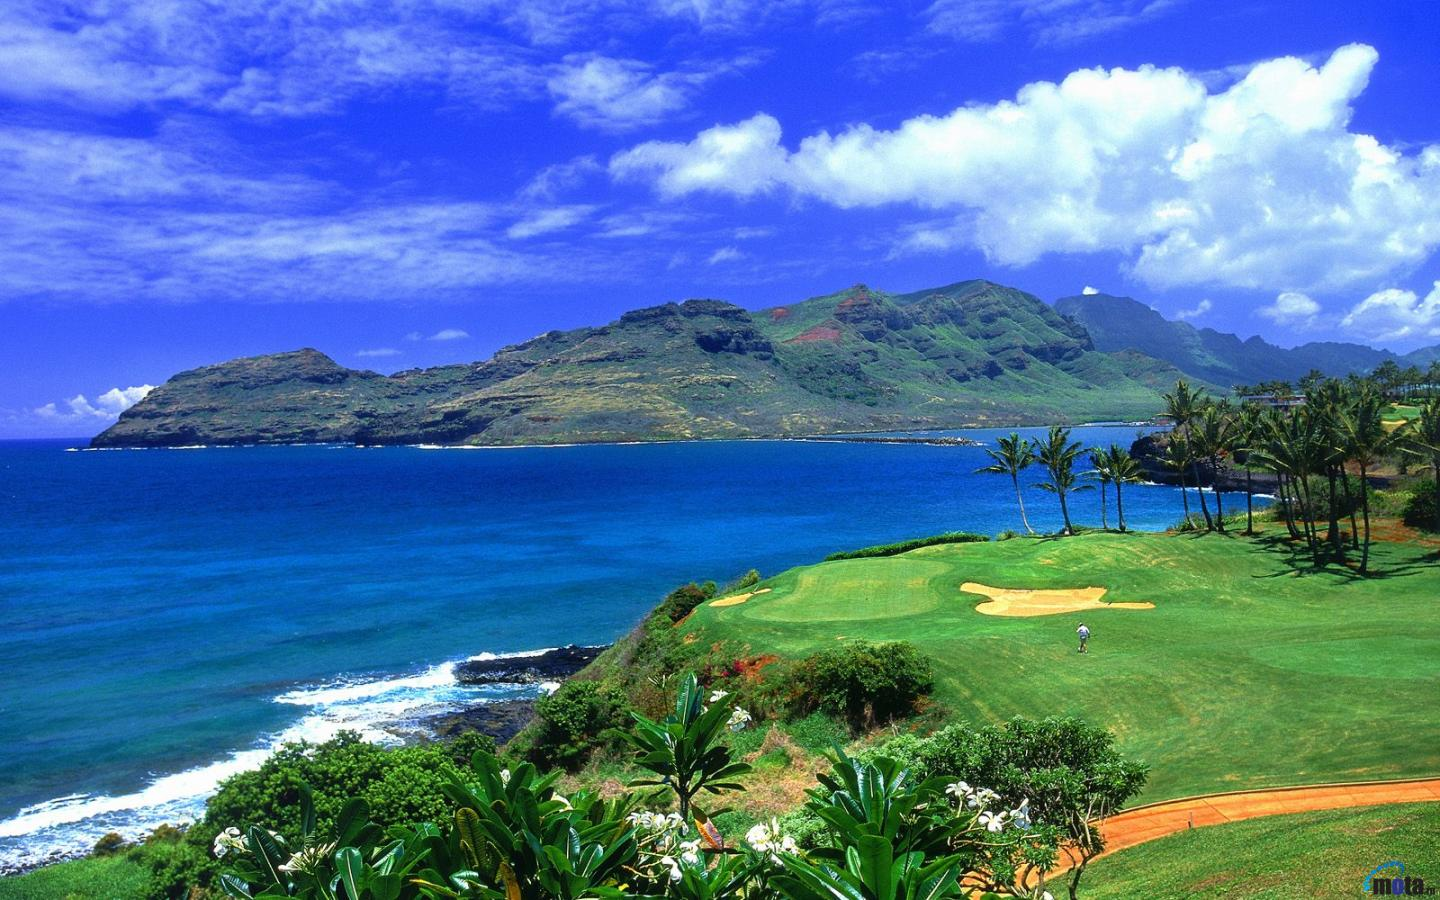 Wallpaper Golf Course in Hawaii 1440 x 900 widescreen Desktop 1440x900